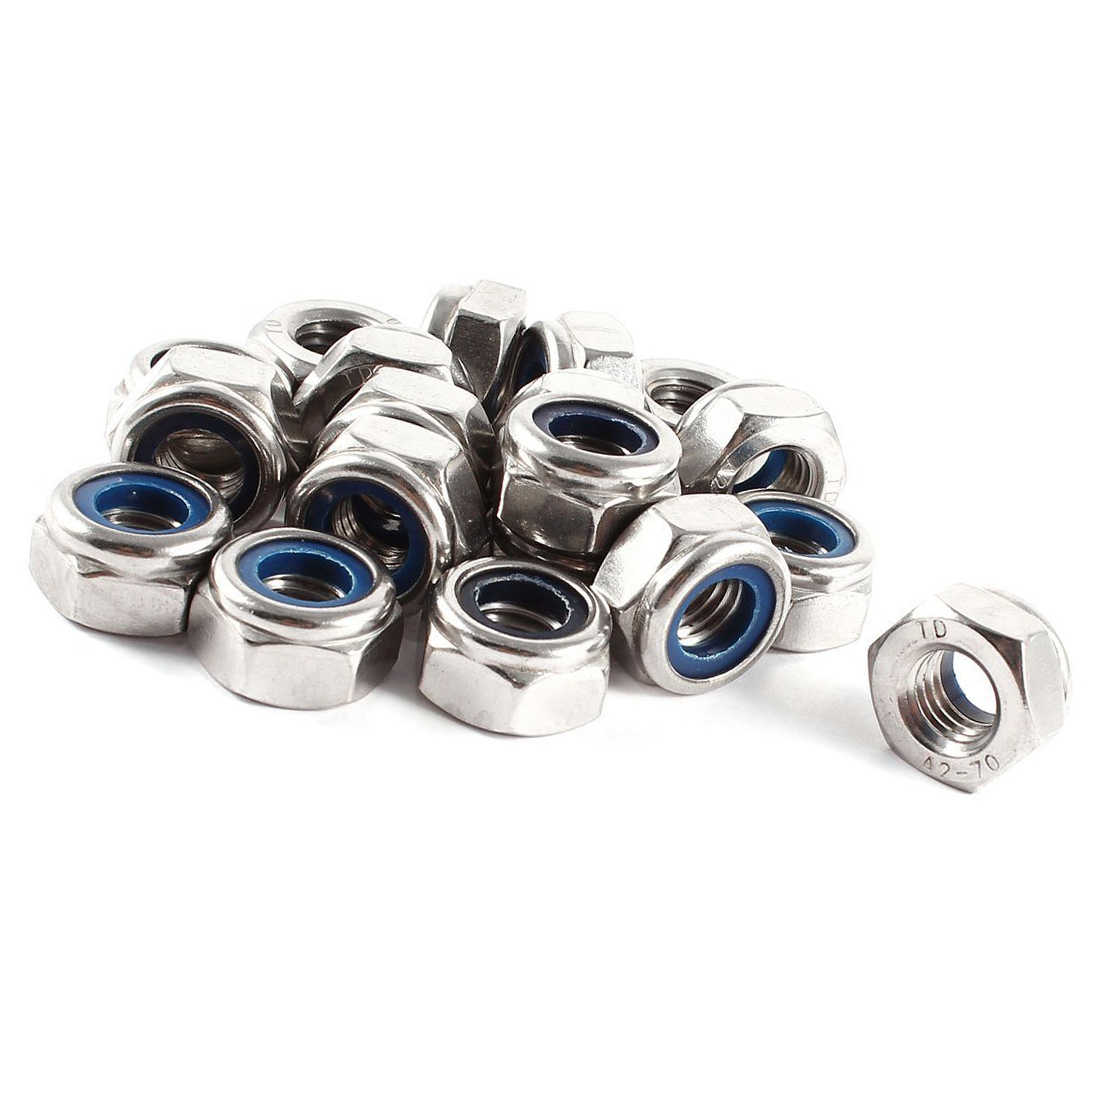 New 20 Pcs 304HC A2 70 Stainless Steel Hex Nylock Lock Nut M10 10mm